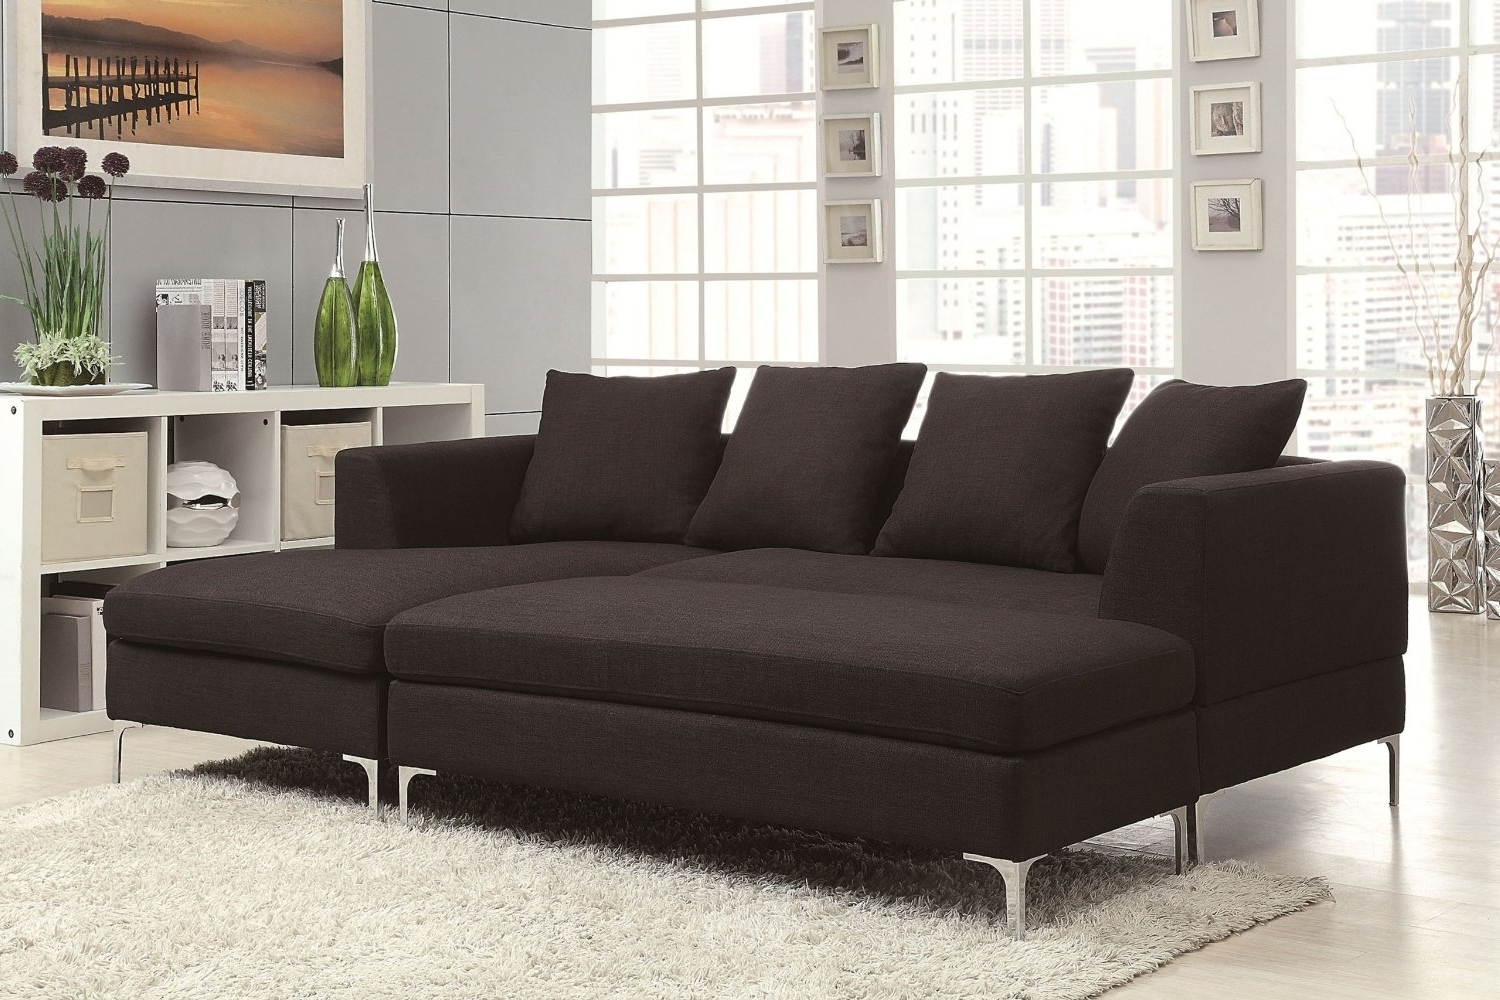 Sectional Sofa Design: Amazing Sofa Chaise Sectional Leather Inside Preferred Sectional Sofa Chaises (View 10 of 15)